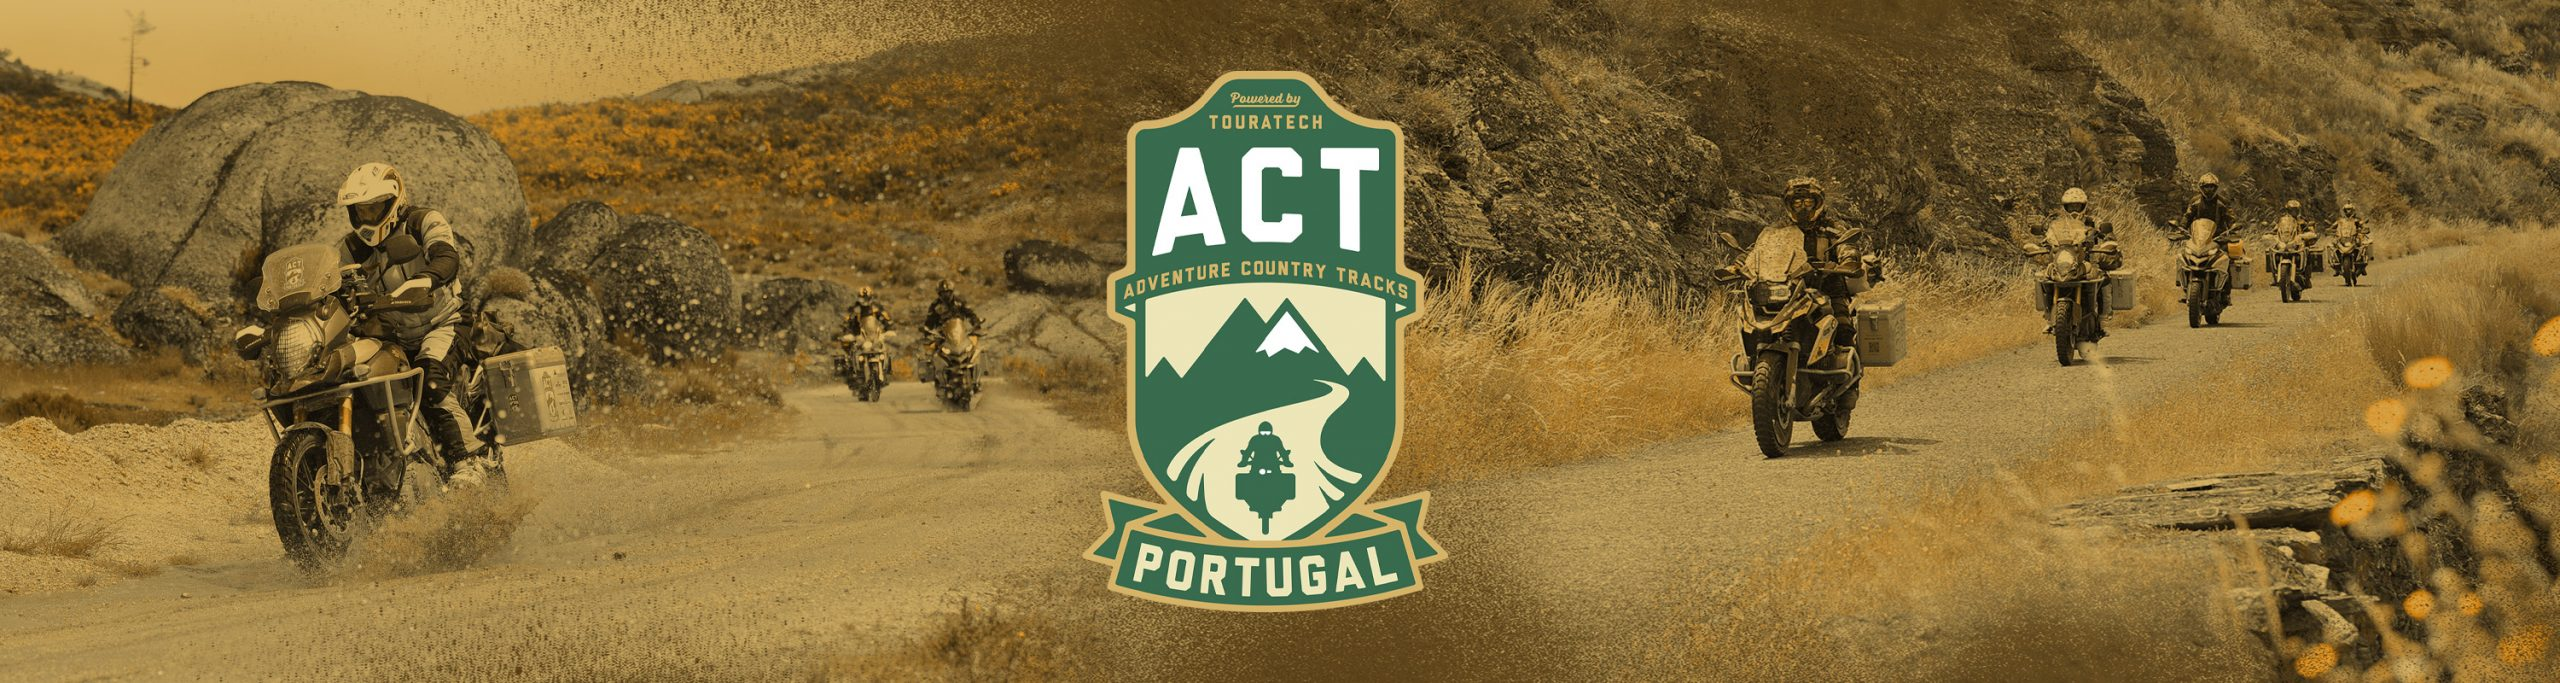 ACT_Adventure_Country_Tracks_by_majormajor_Start